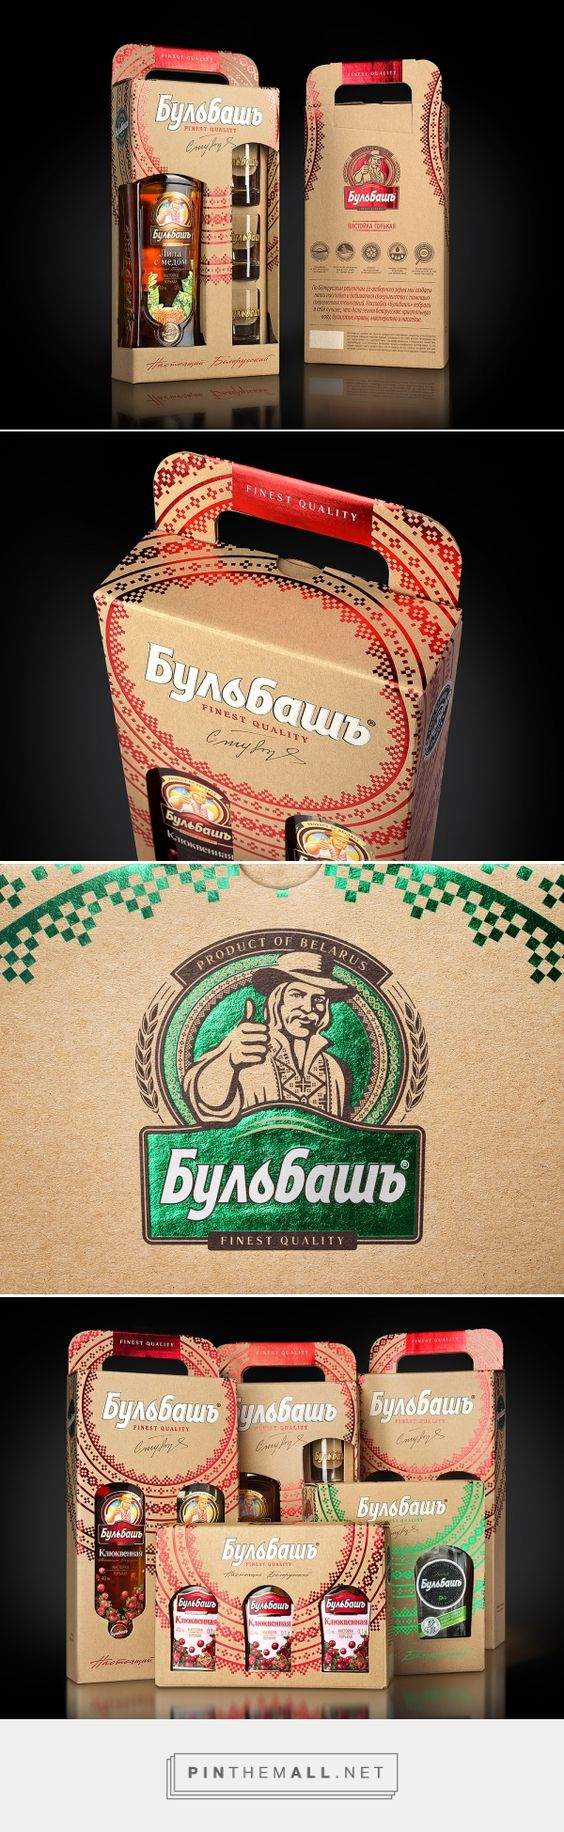 Bulbash Souvenir Alcohol Package -  Packaging of the World - Creative Package Design Gallery - http://www.packagingoftheworld.com/2016/08/bulbash-souvenir-alcohol-package.html